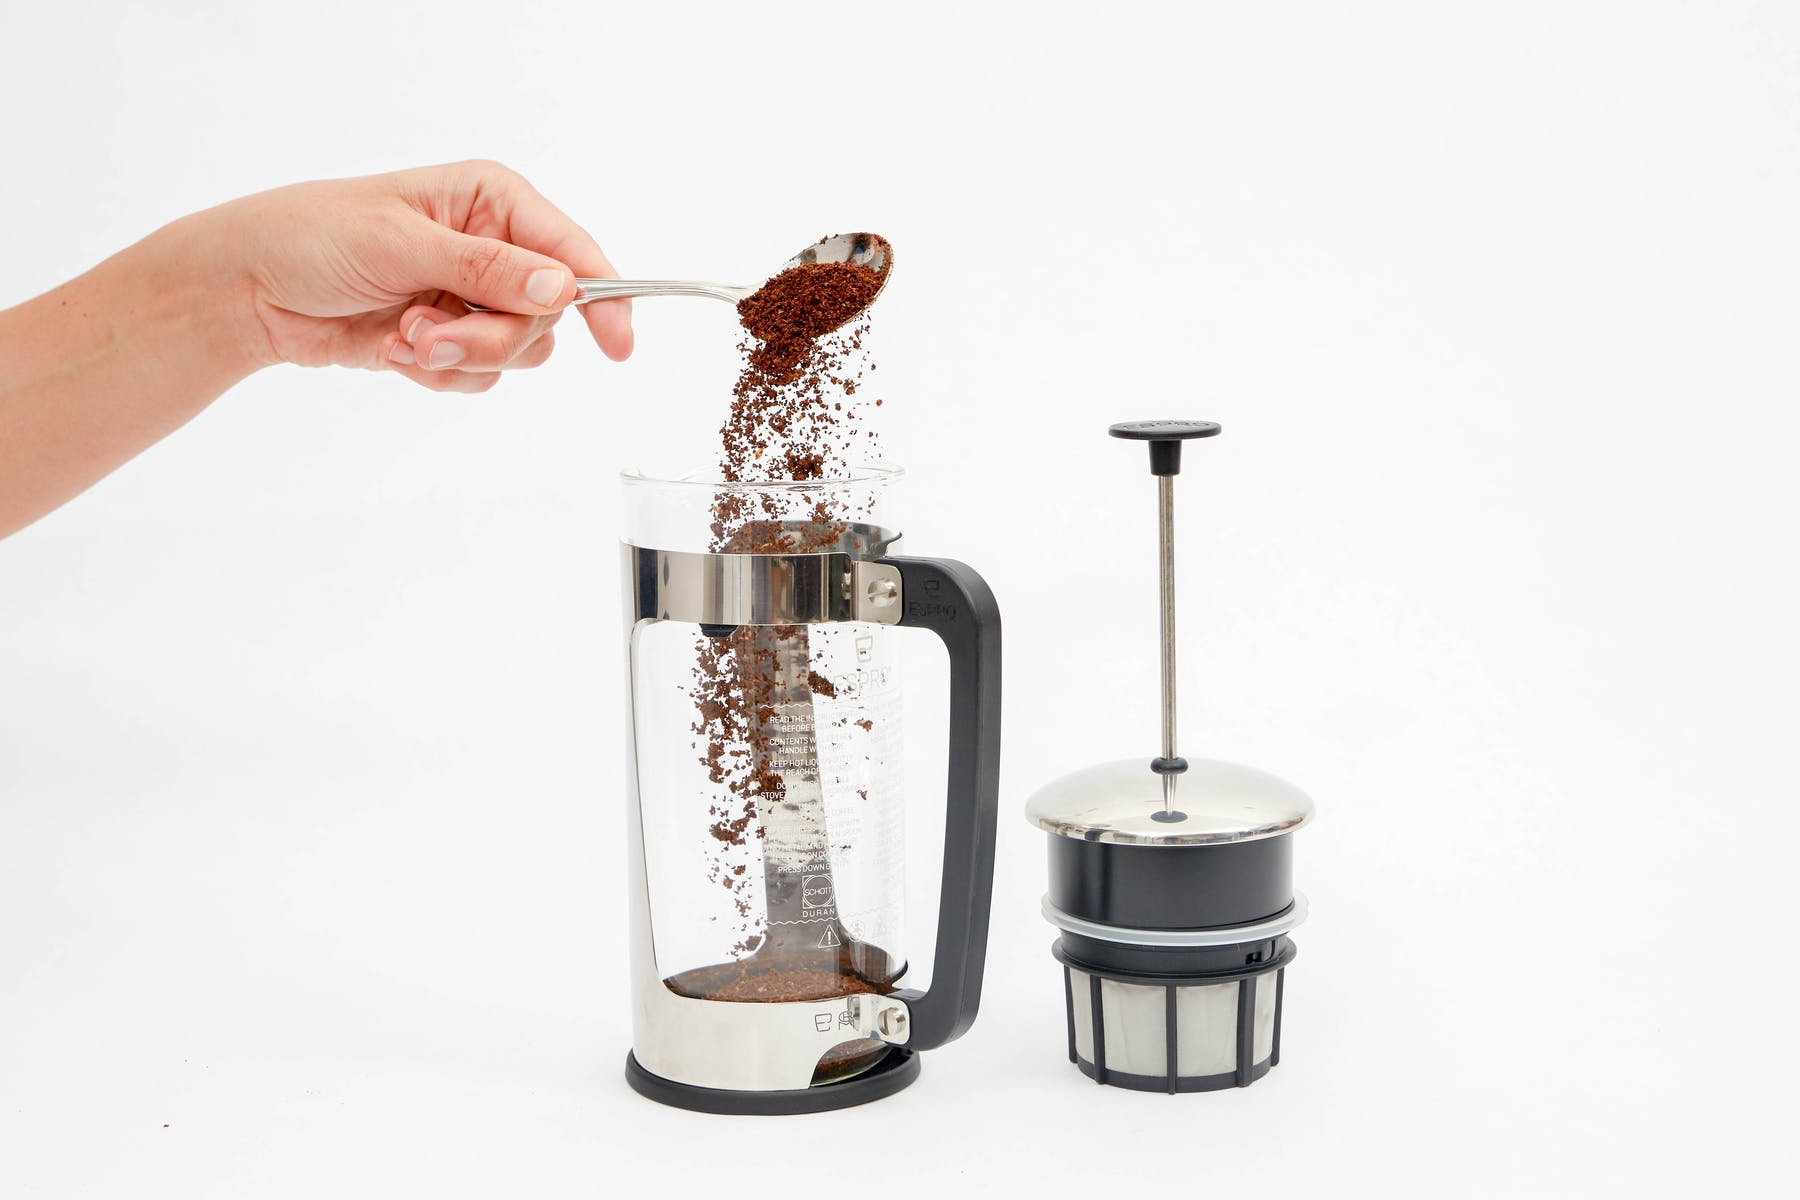 Place ground coffee in French Press